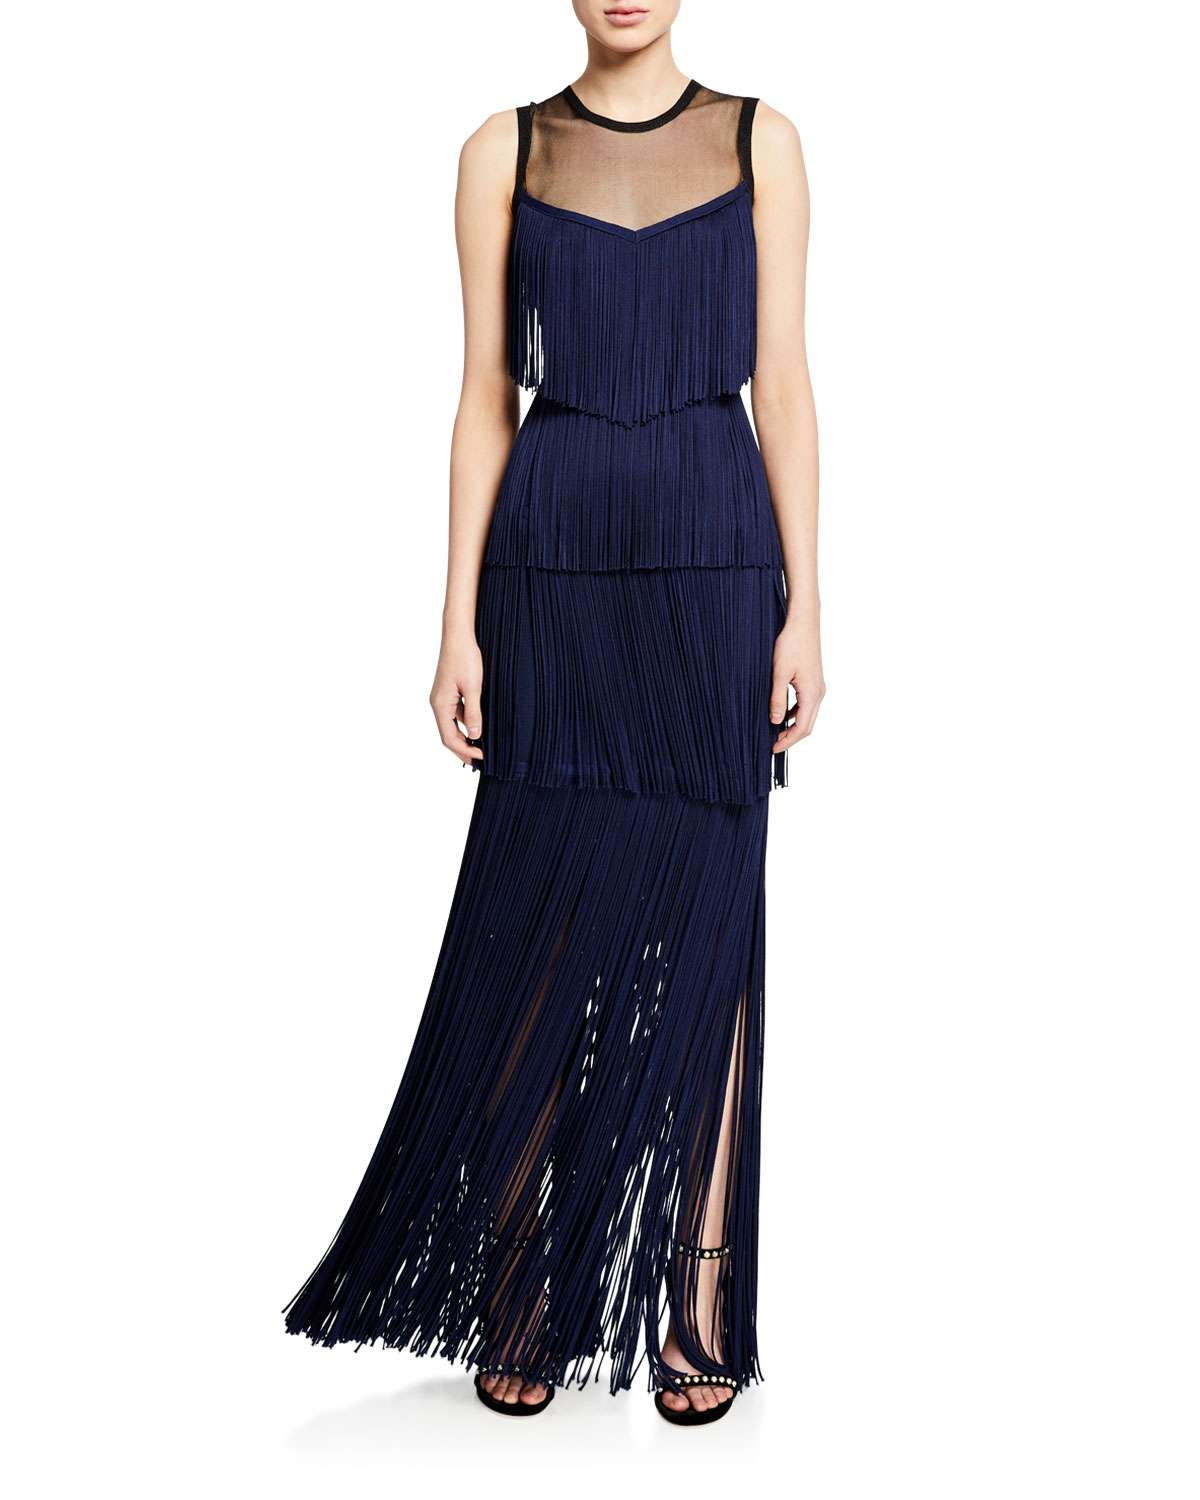 Illusion Neck Fringe Gown